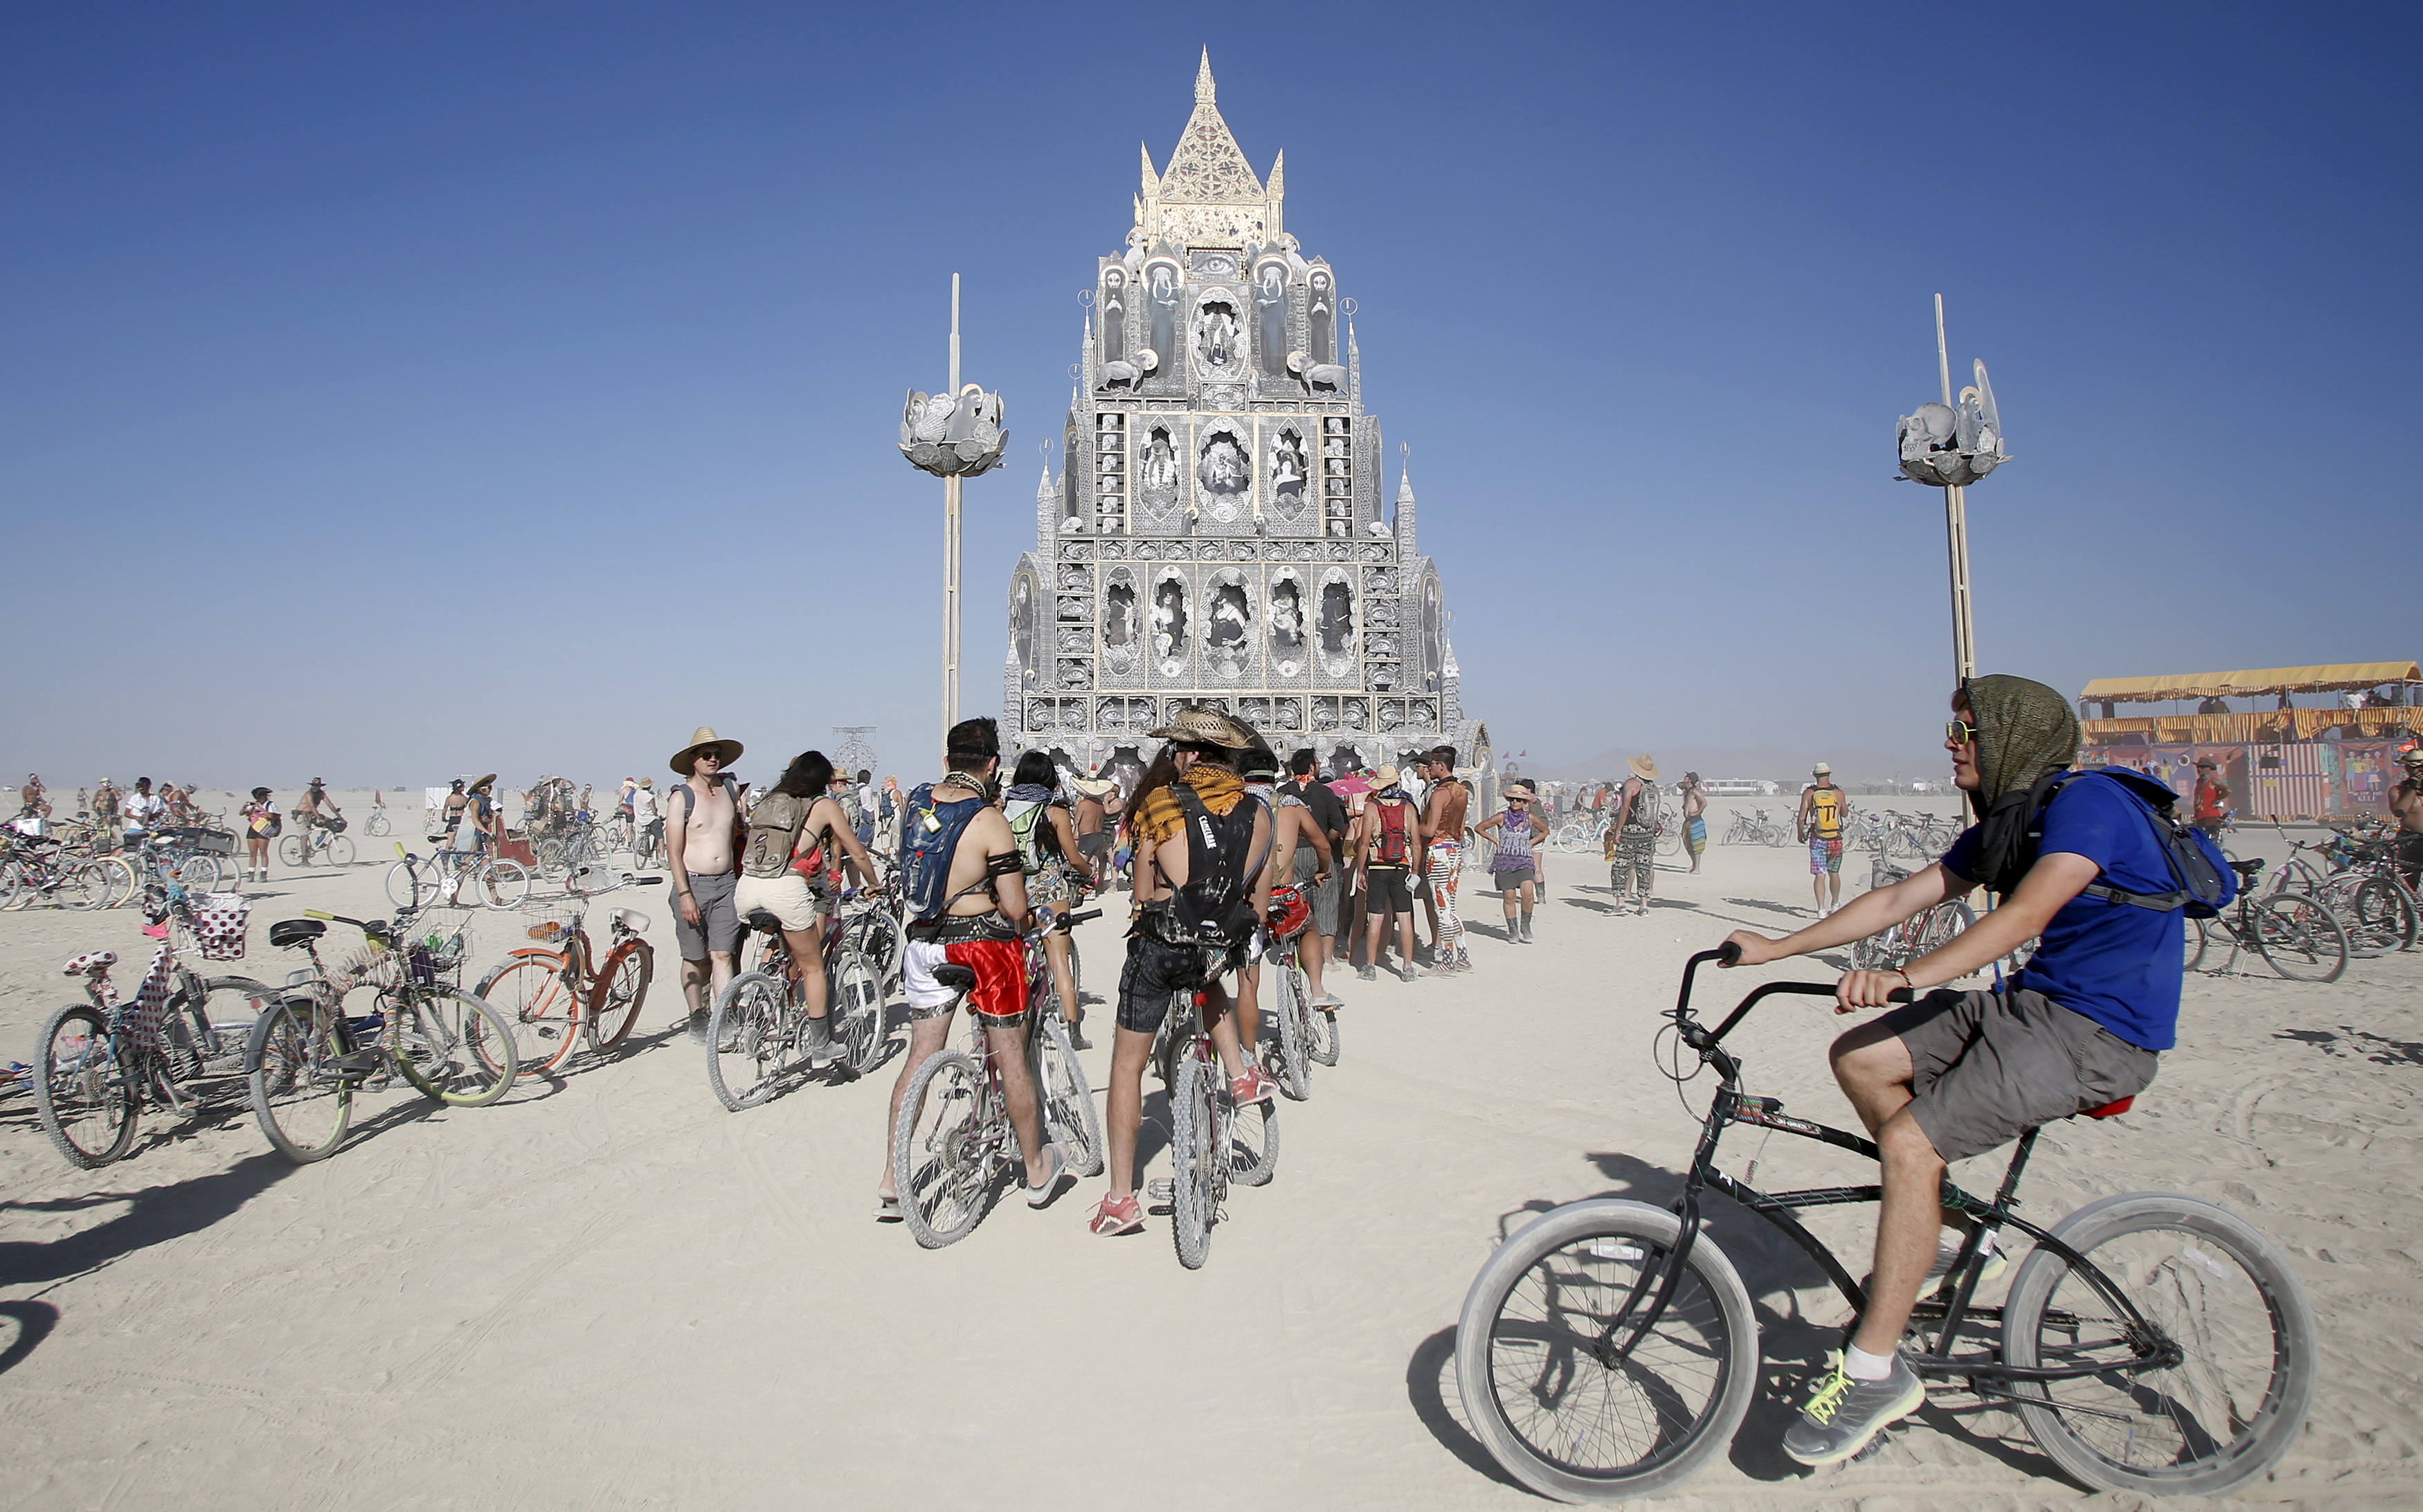 Burning Man Wallpapers High Quality Download 3500x2184